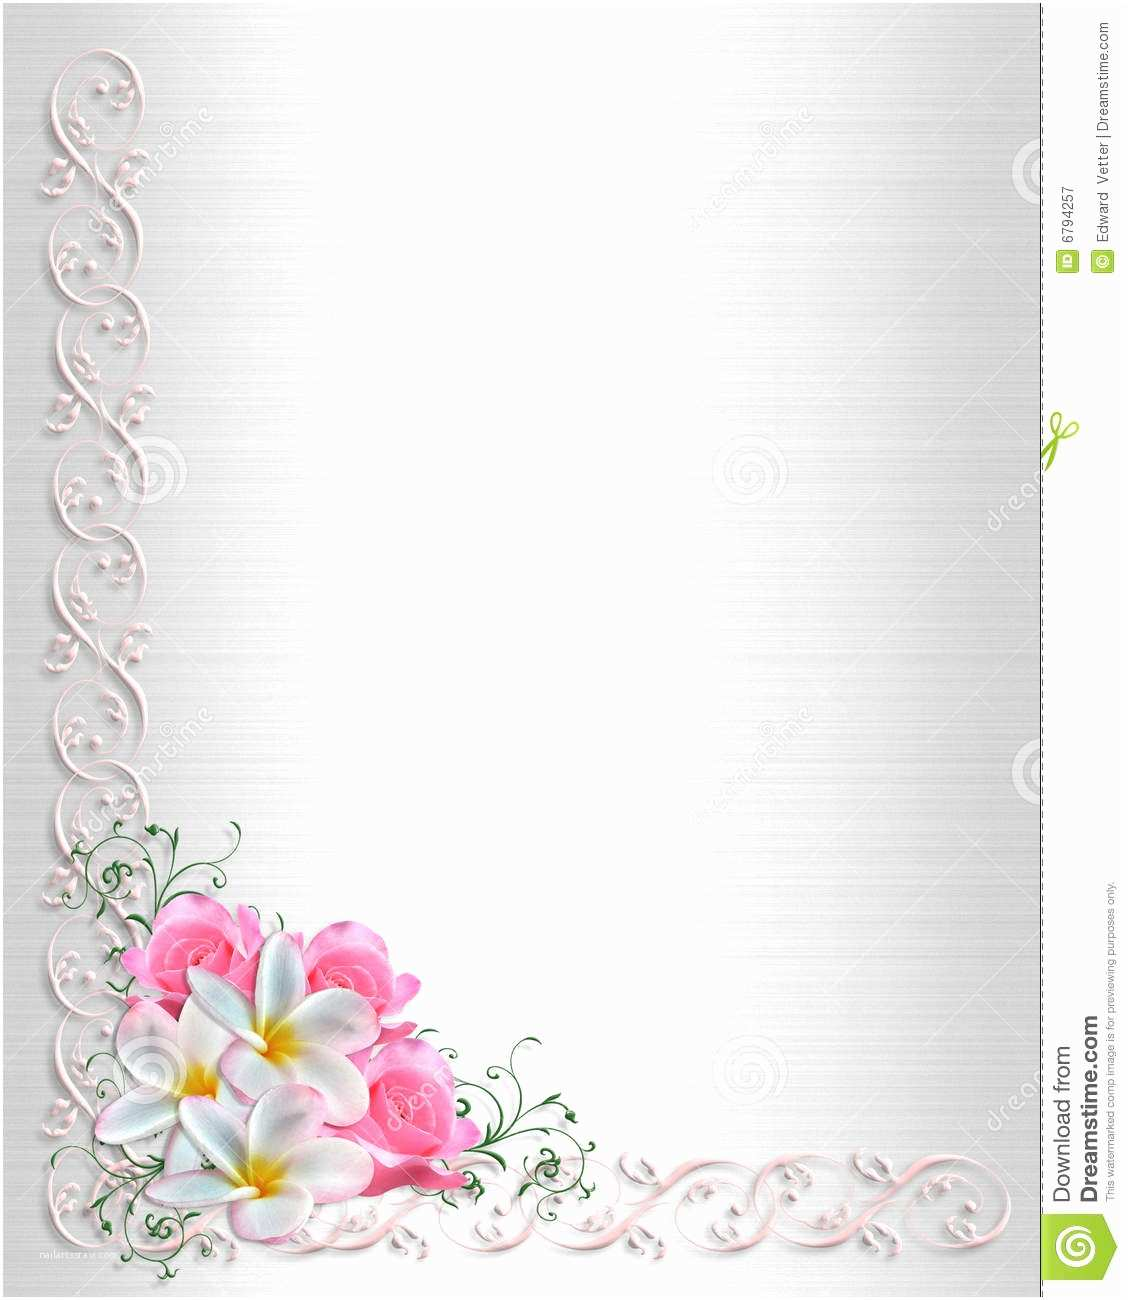 Background Designs for Wedding Invitations Free 14 Wedding Invitation Background Designs Free